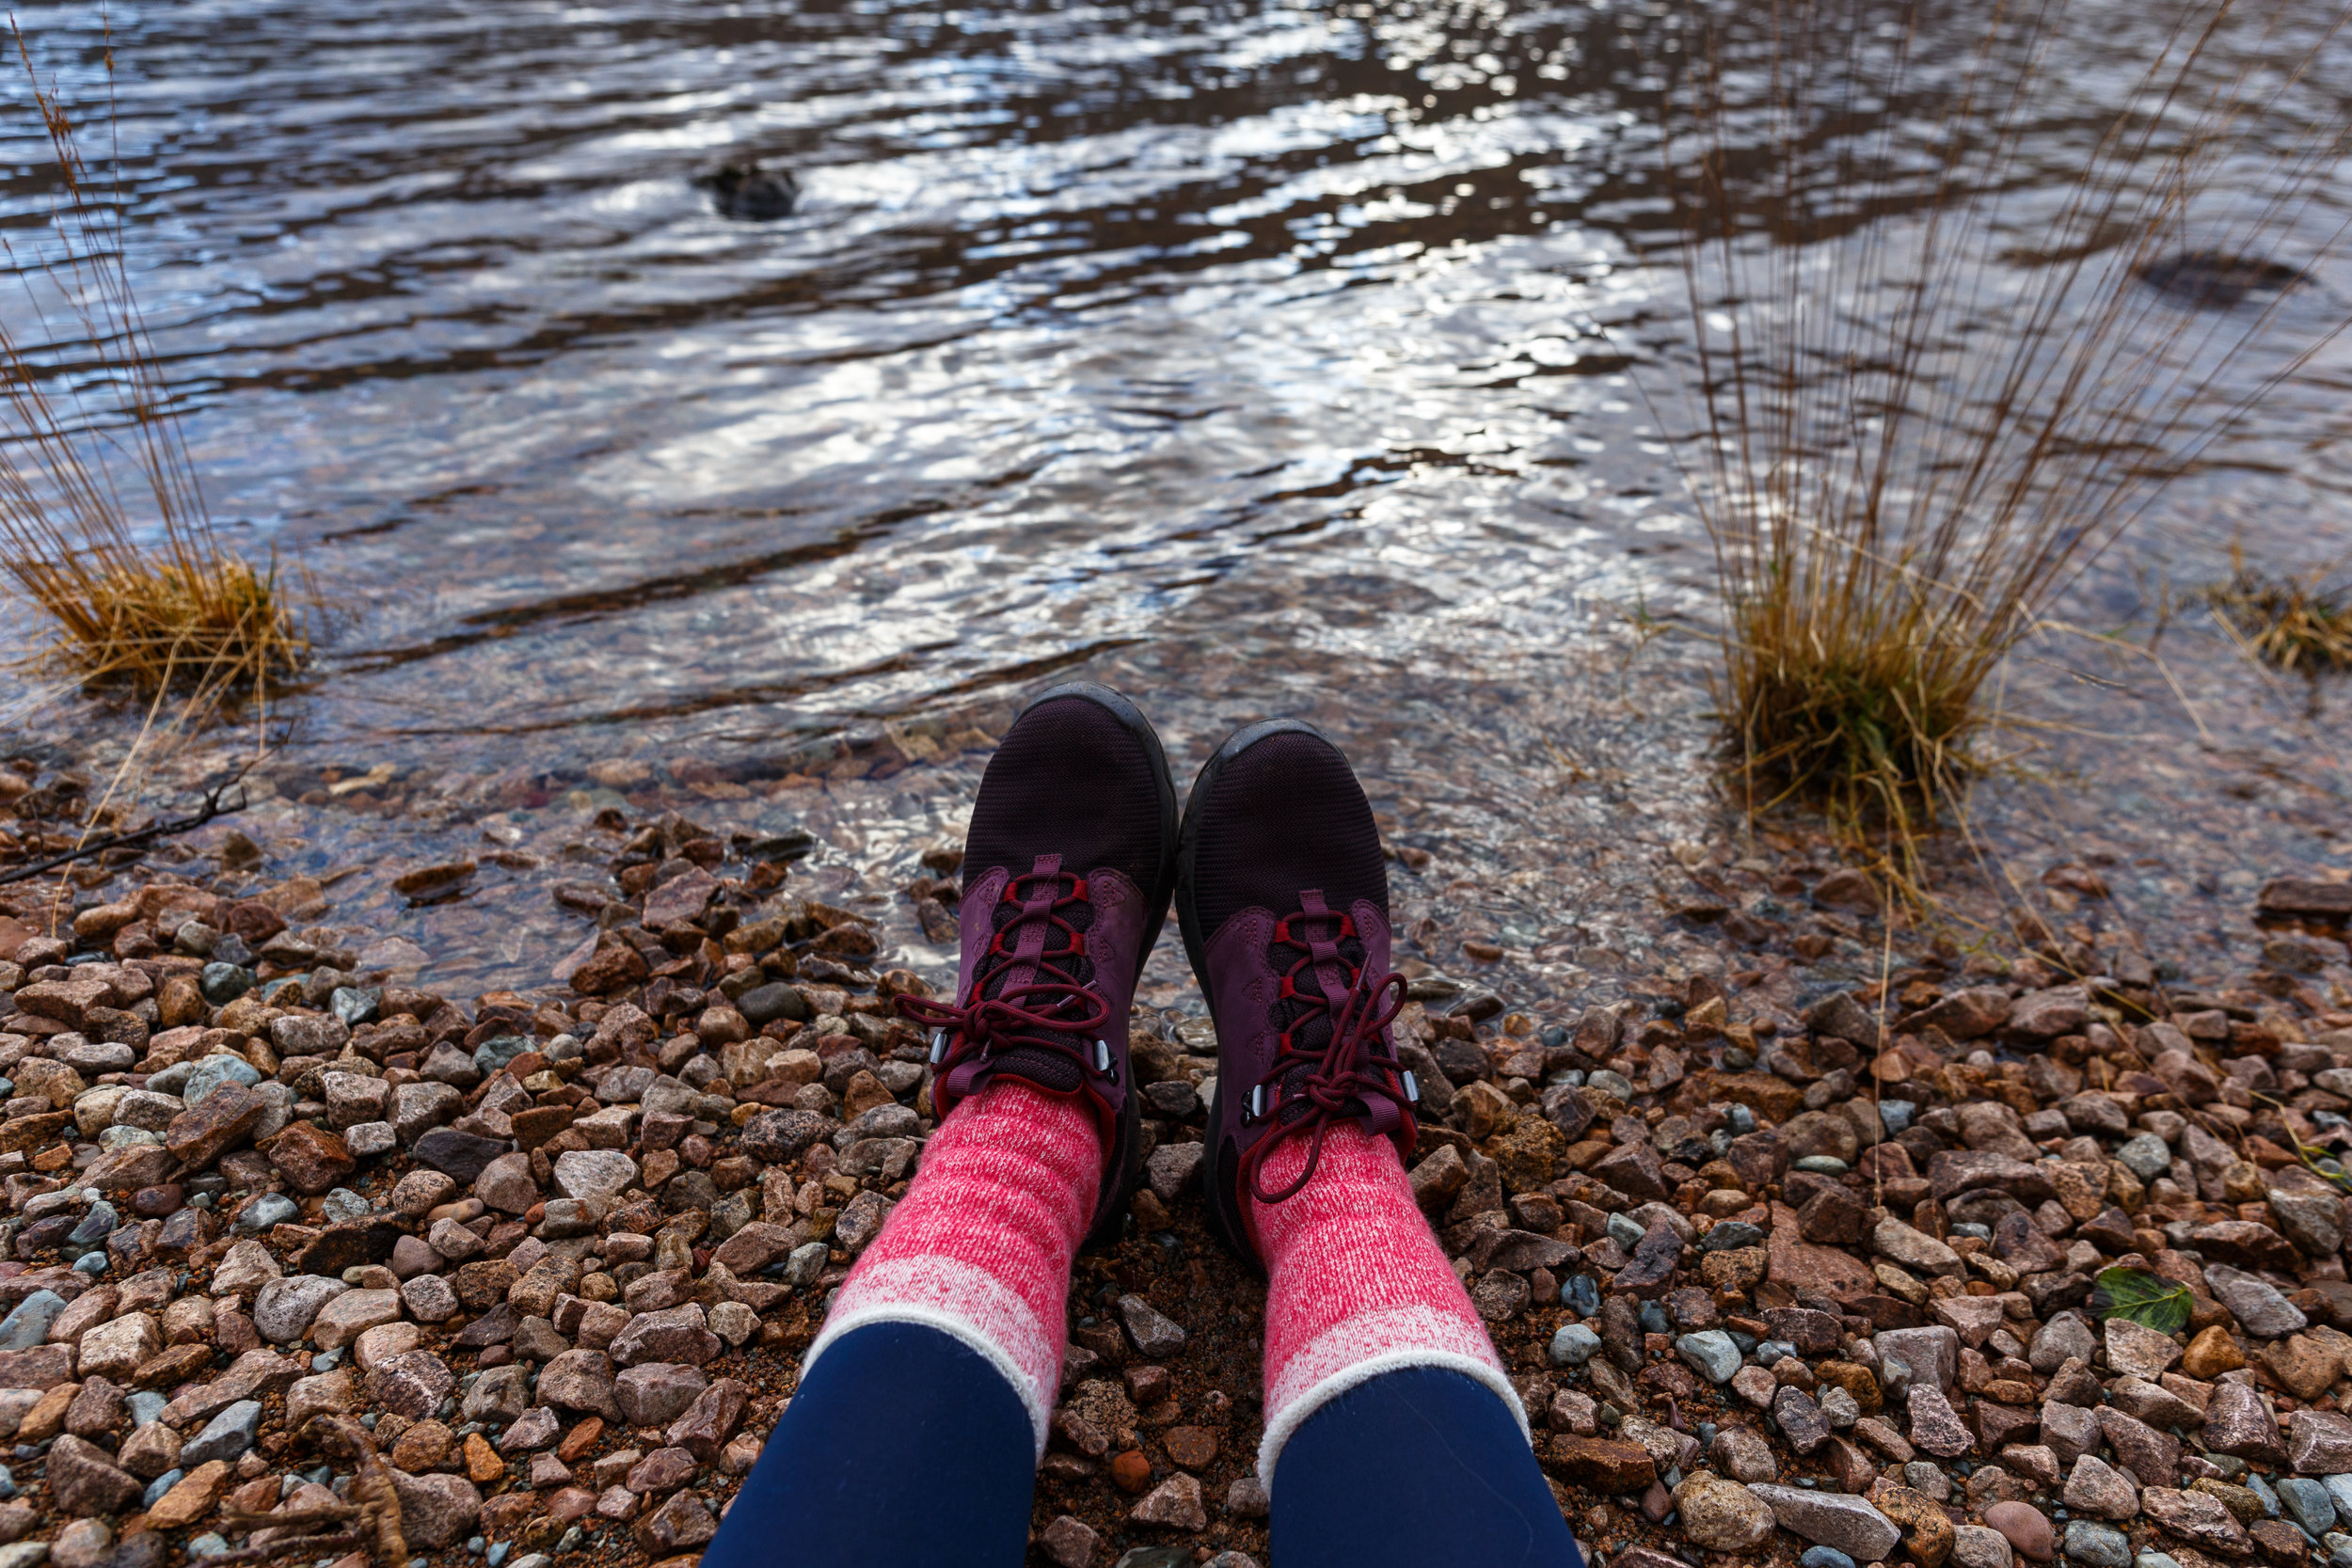 The Arrowood Shoes, paired with RMBLR Peveril Socks in Baked Apple